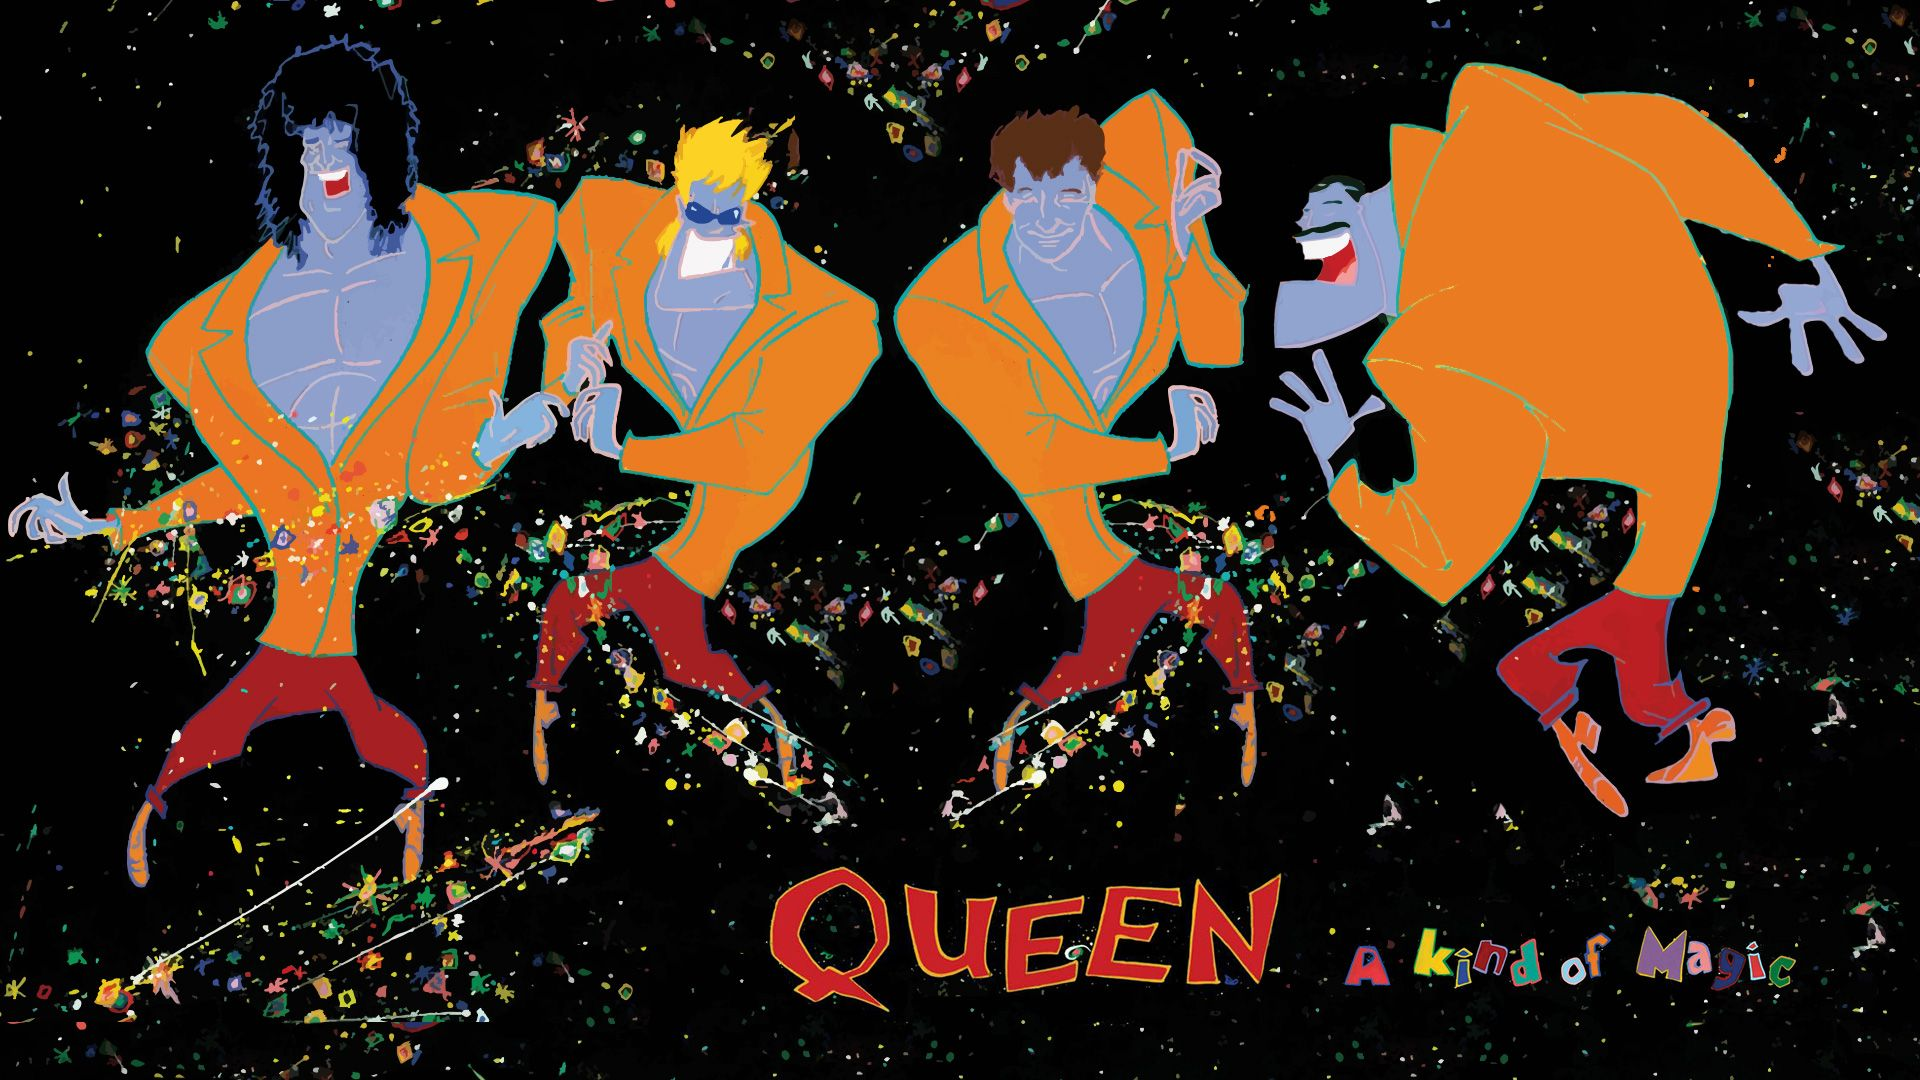 Queen A Kind Of Magic By Felipemuve On Deviantart A Kind Of Magic Queen Albums Album Art